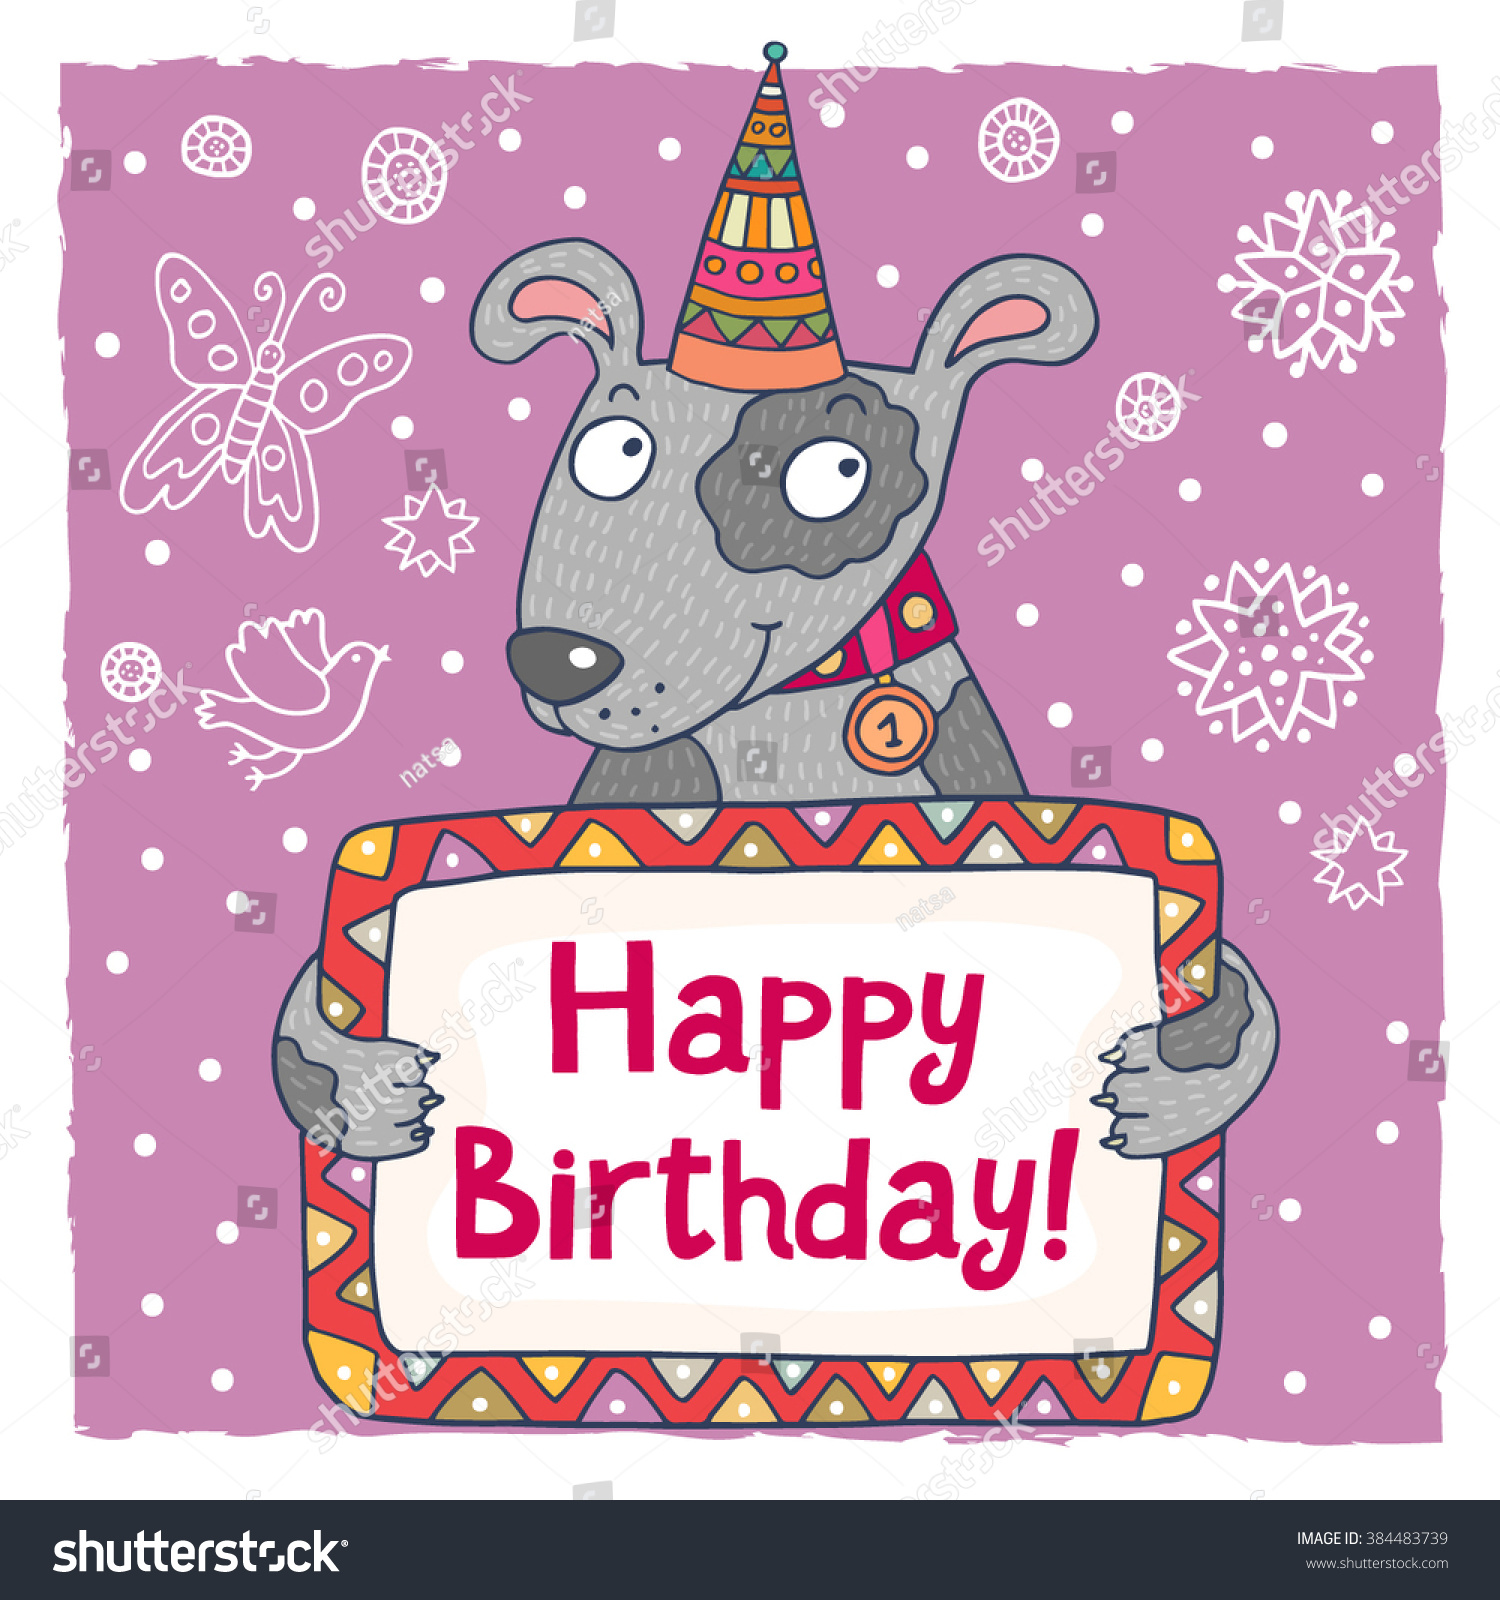 Cute happy birthday greeting card template stock vector 384483739 cute happy birthday greeting card template with a cartoon dog kristyandbryce Images